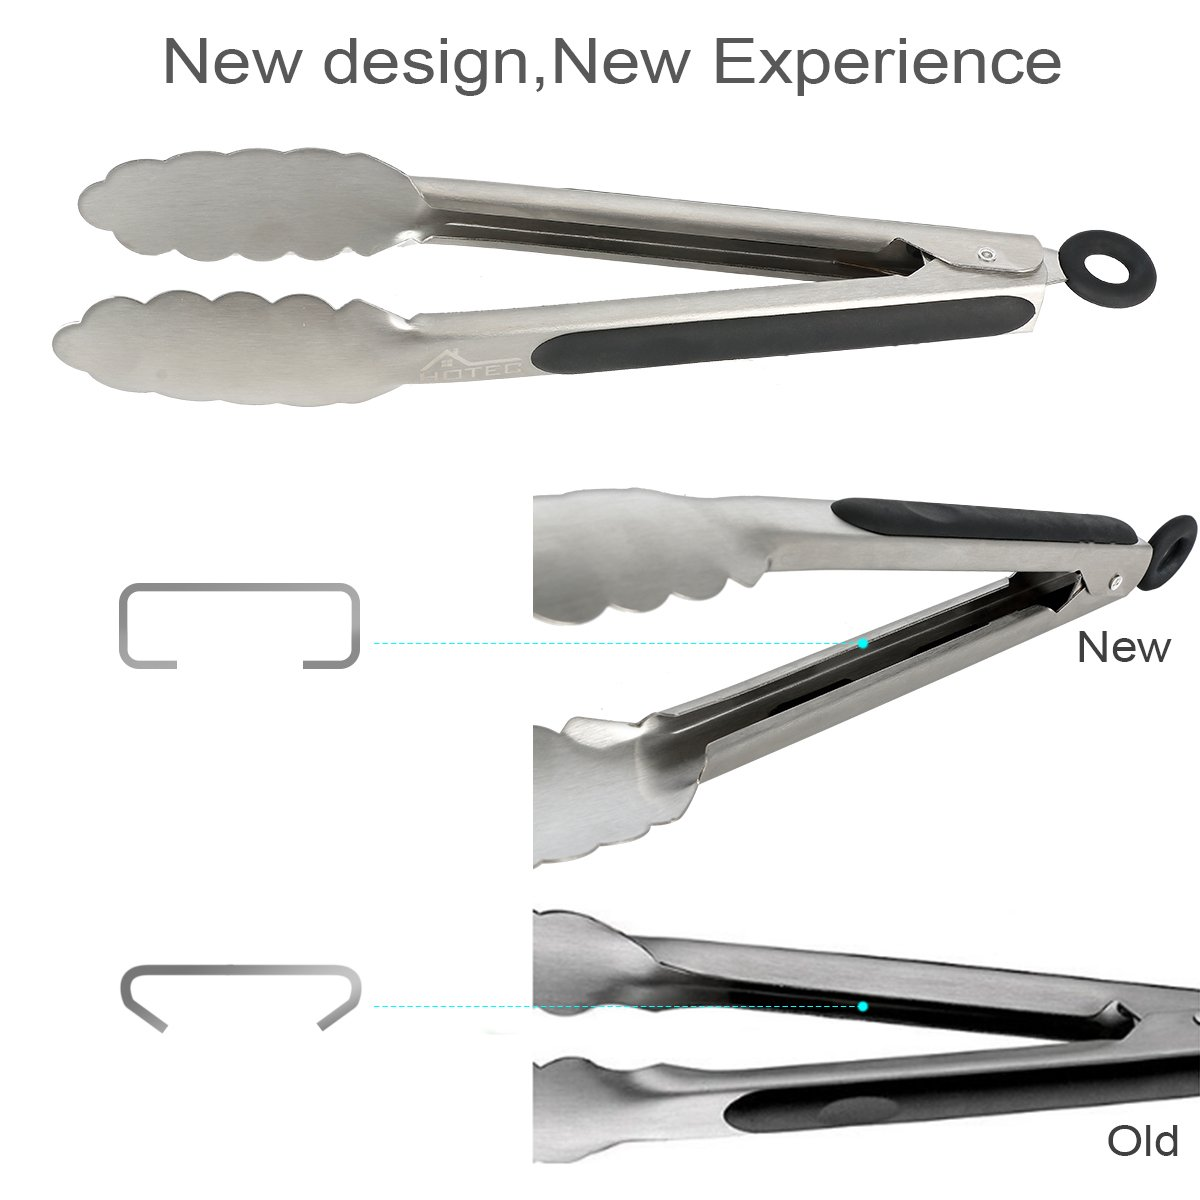 Hotec Stainless Steel Kitchen Tongs Set of 2 - 9'' and 12'', Locking Metal Food Tongs Non-Slip Grip by Hotec (Image #3)